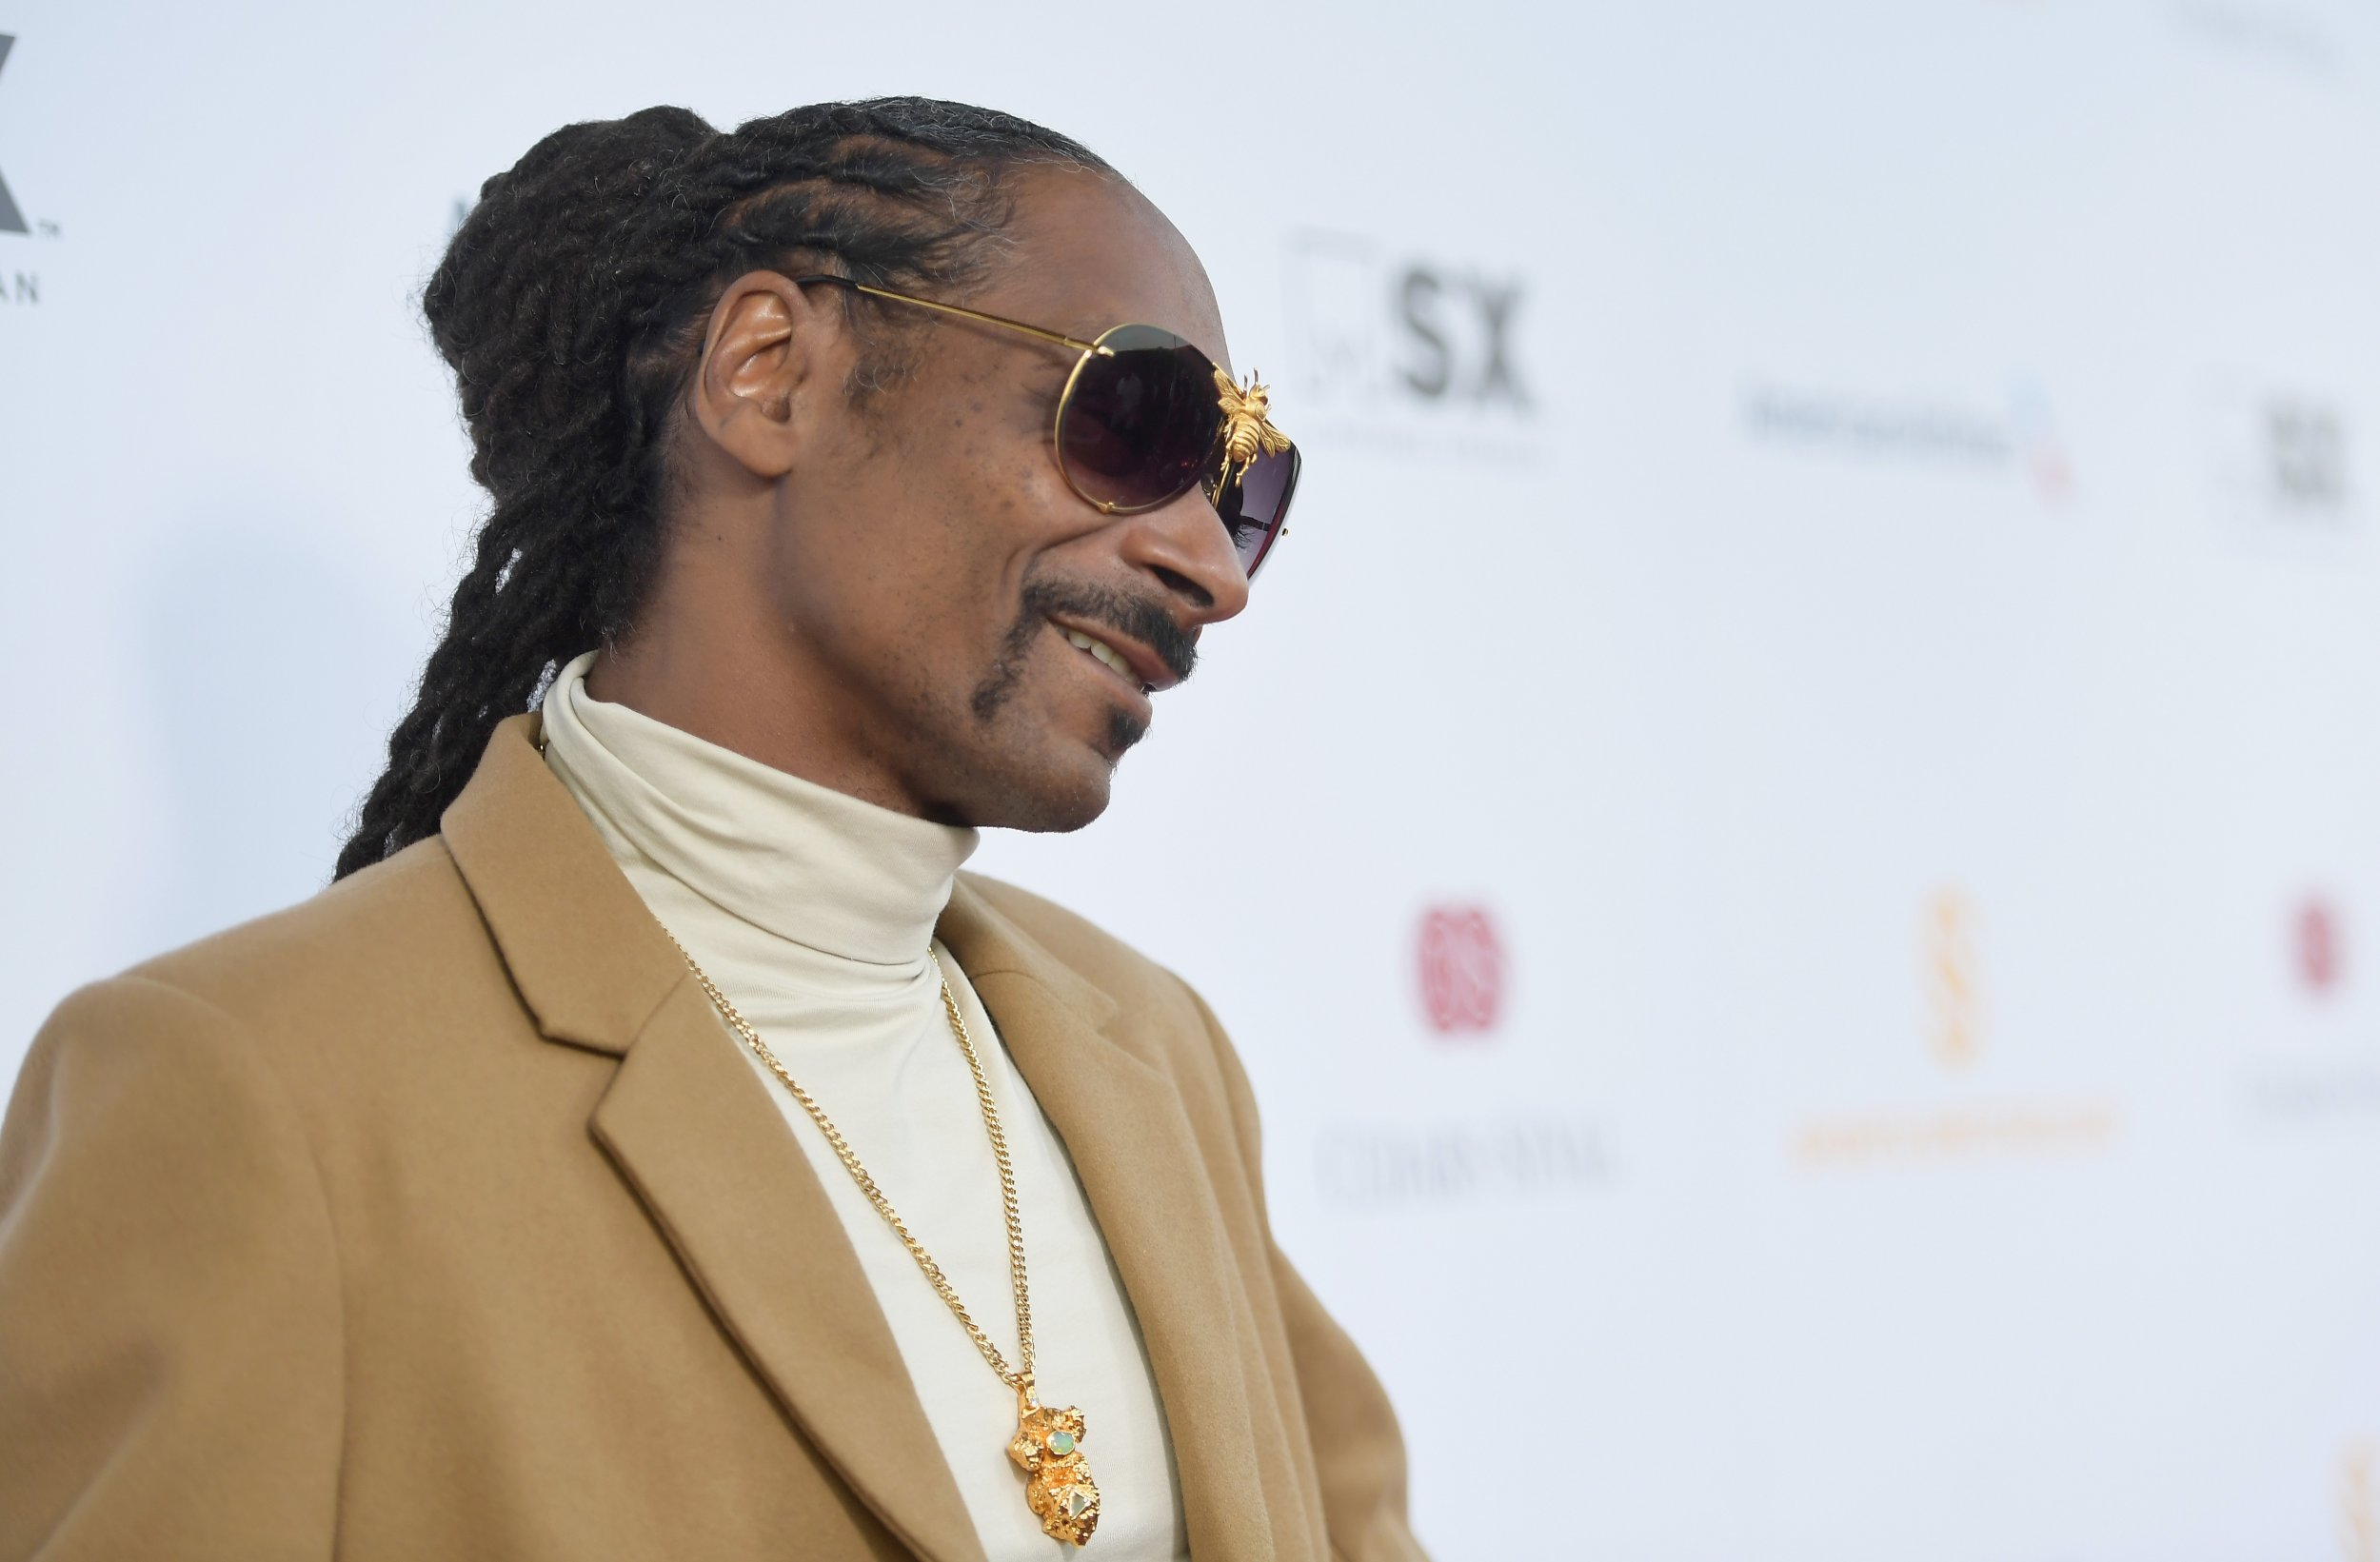 Snoop Dogg says Kanye West is an 'Uncle Tom'